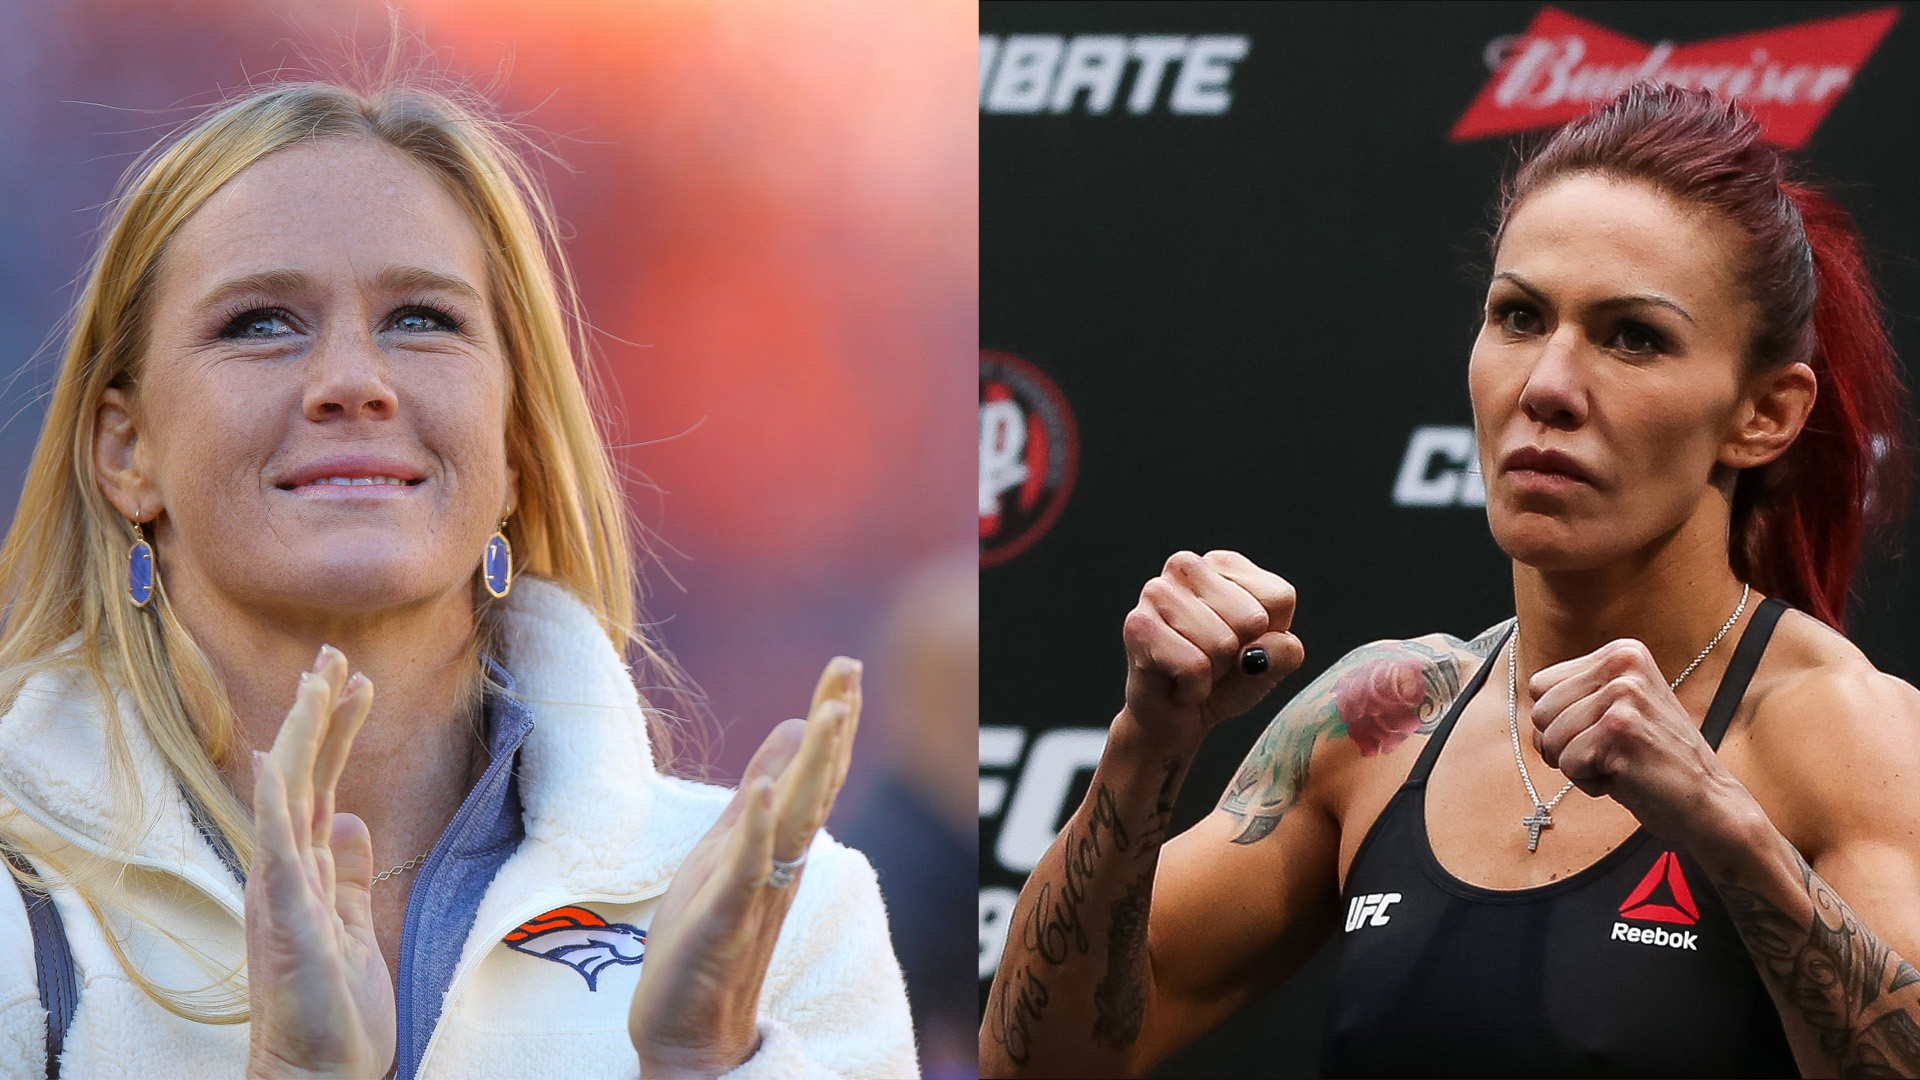 Cyborg's first featherweight title defence confirmed for UFC 219